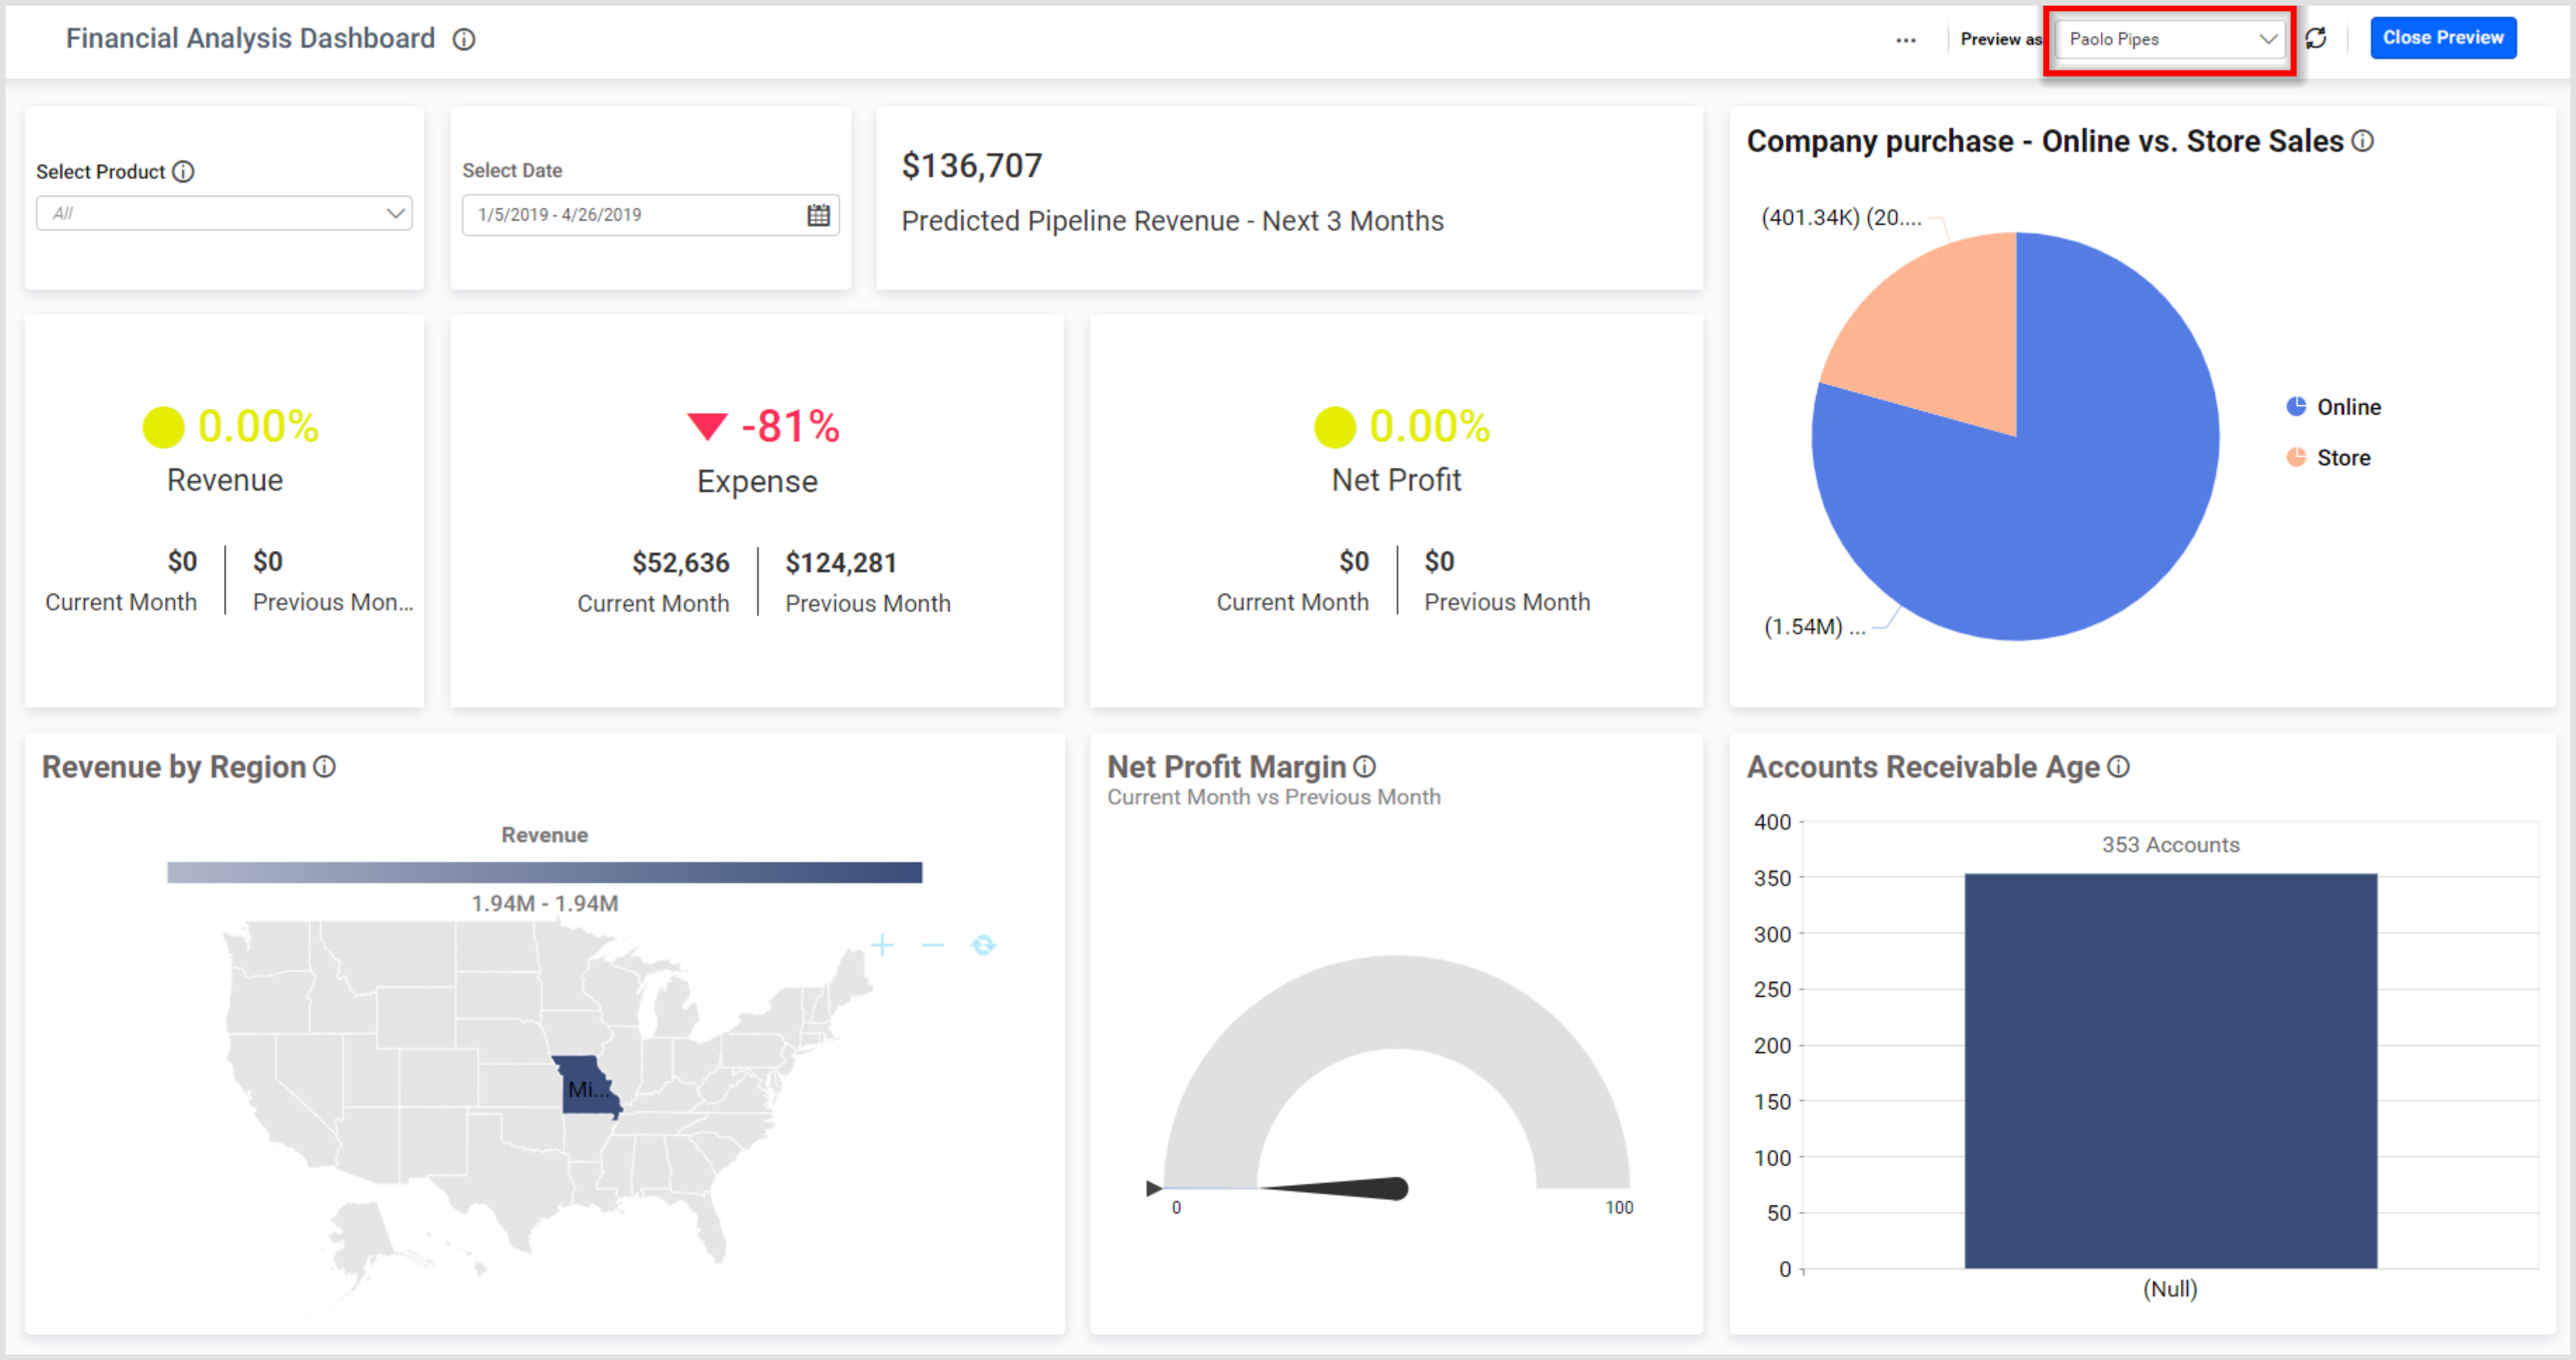 Financial Analysis Dashboard with User Filter